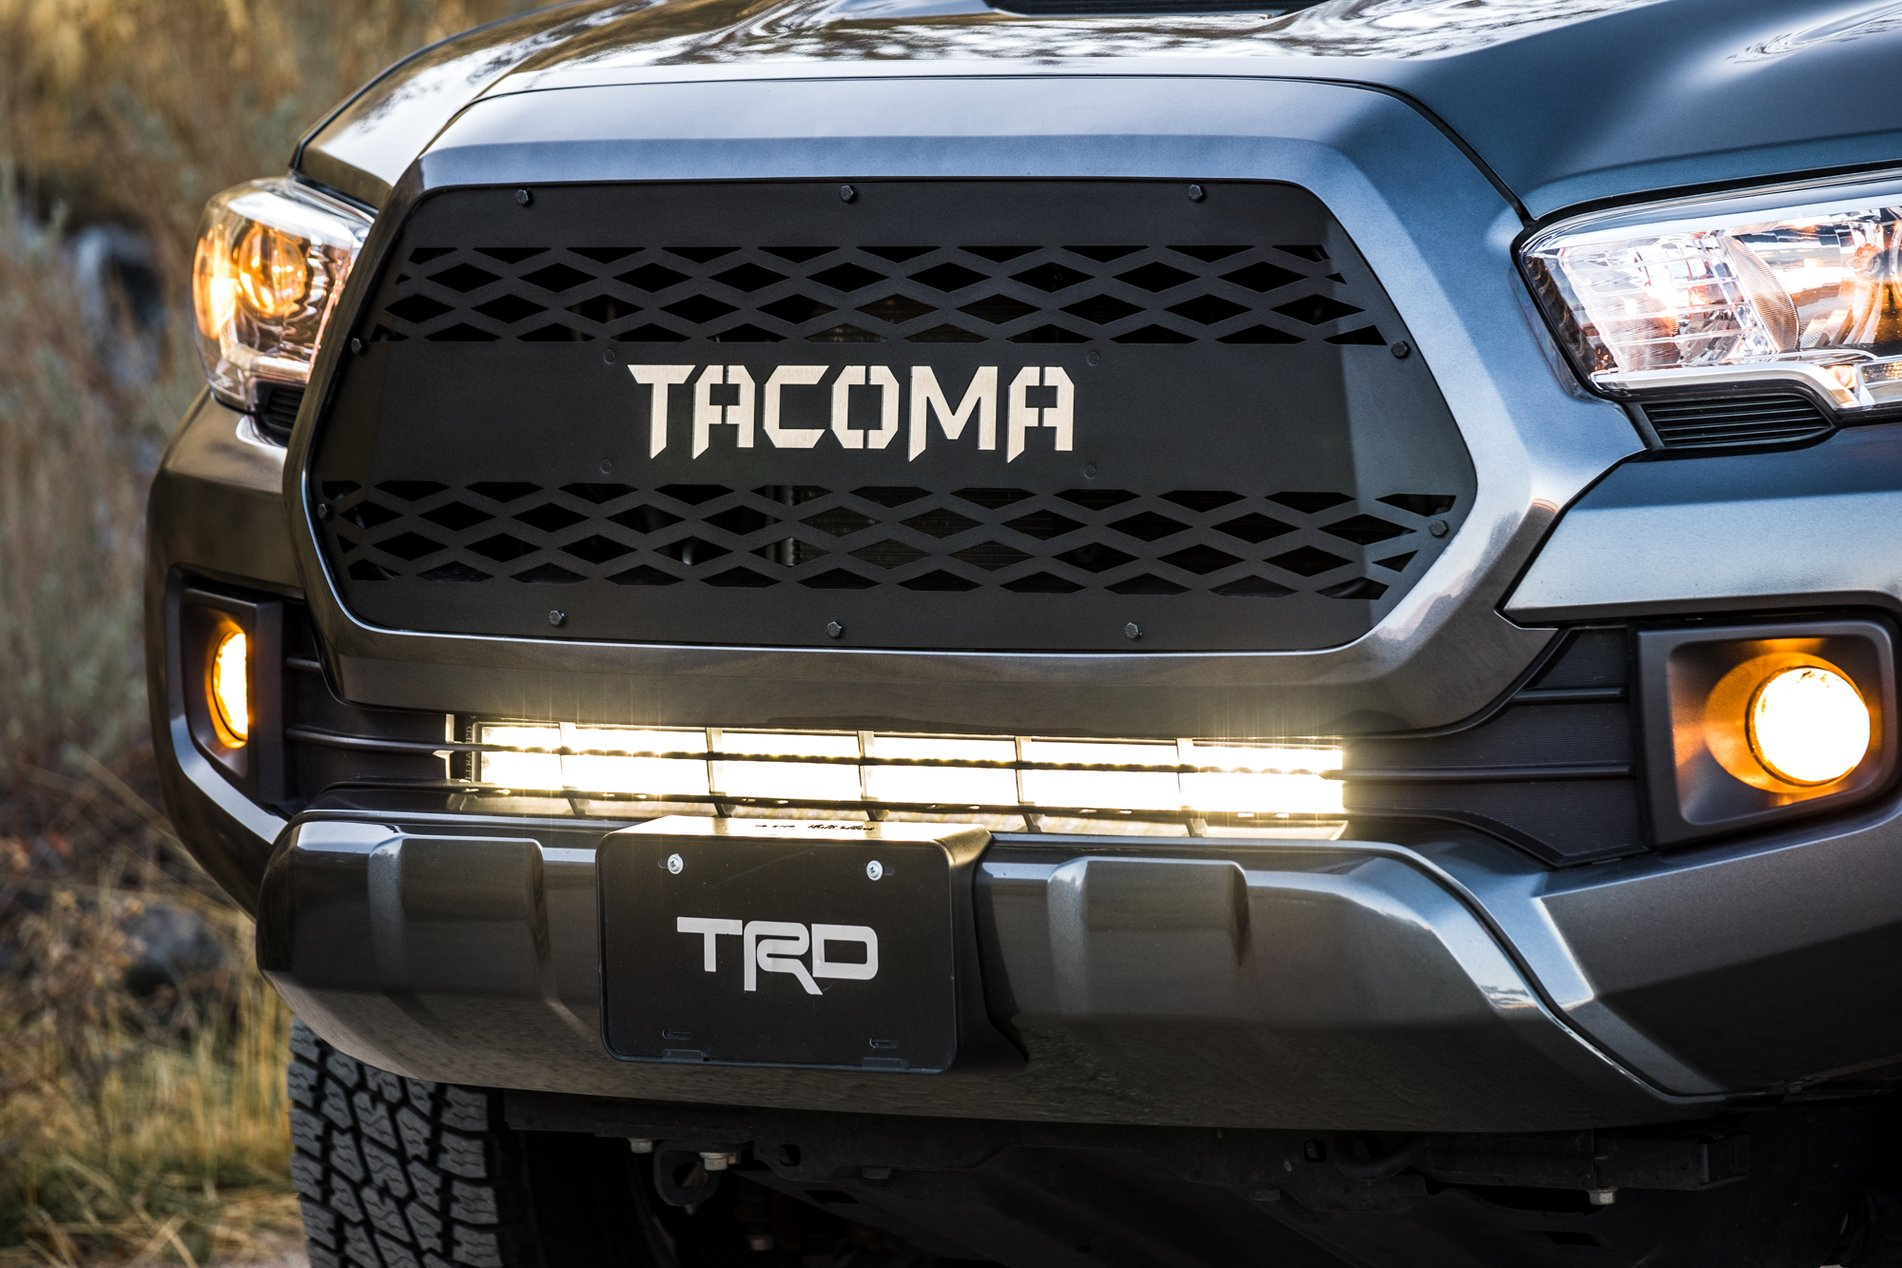 tacoma toyota grille insert empyre grills gen 3rd aftermarket truck right which accessories inserts parts taco tuesday yak road options